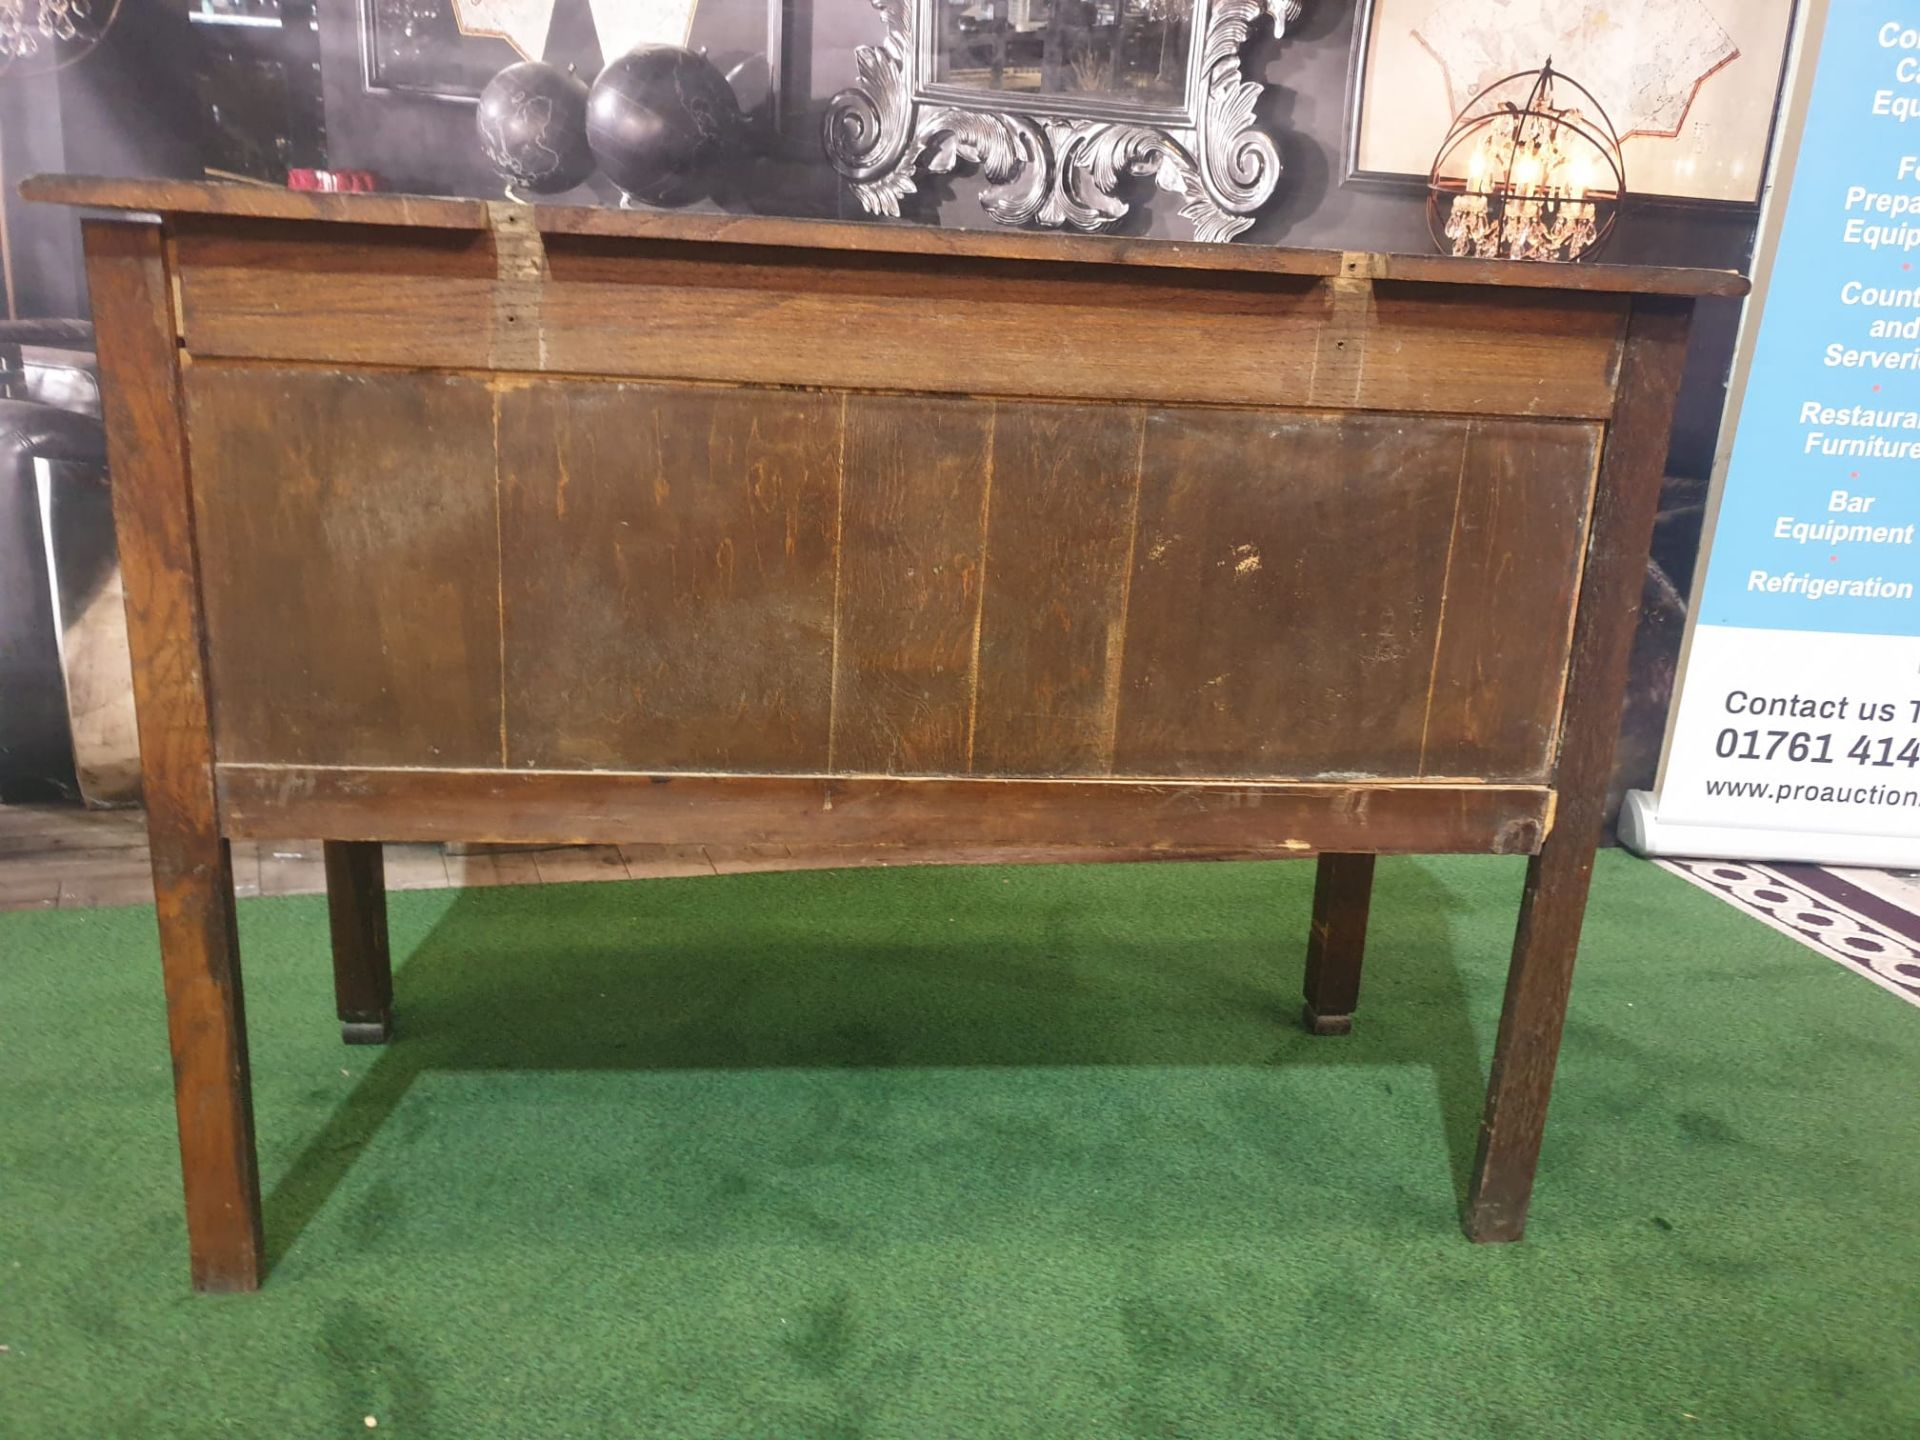 George III style Mahogany Chest of Drawers 2 small drawers over full size single drawer 107w x 47D x - Image 5 of 5